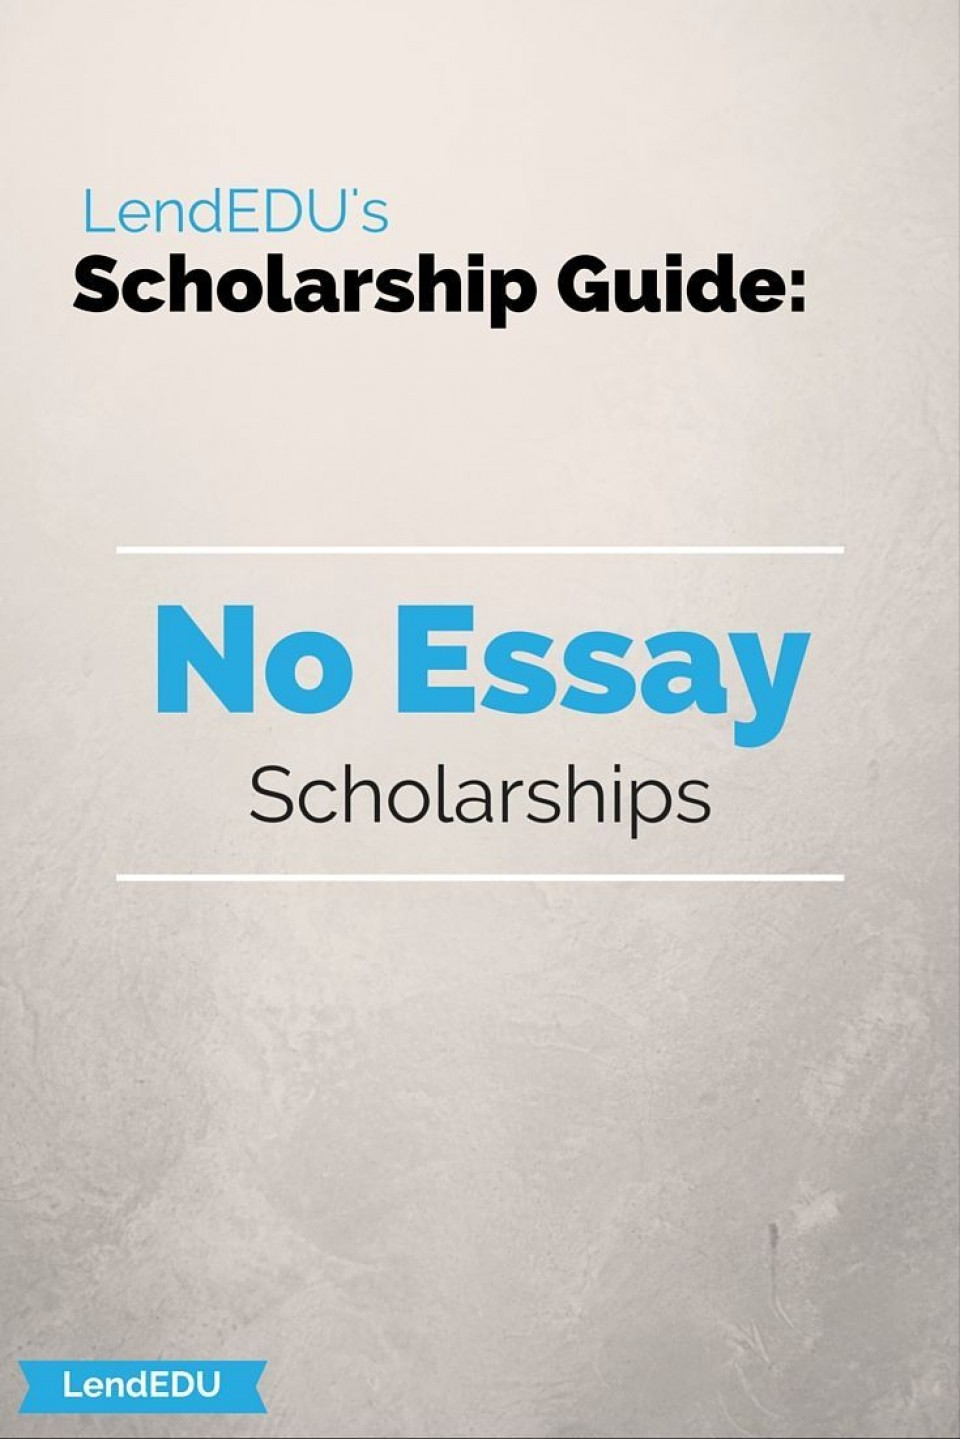 016 Essay Example No Scholarship Wondrous College Scholarships 2018 2019 Free 960